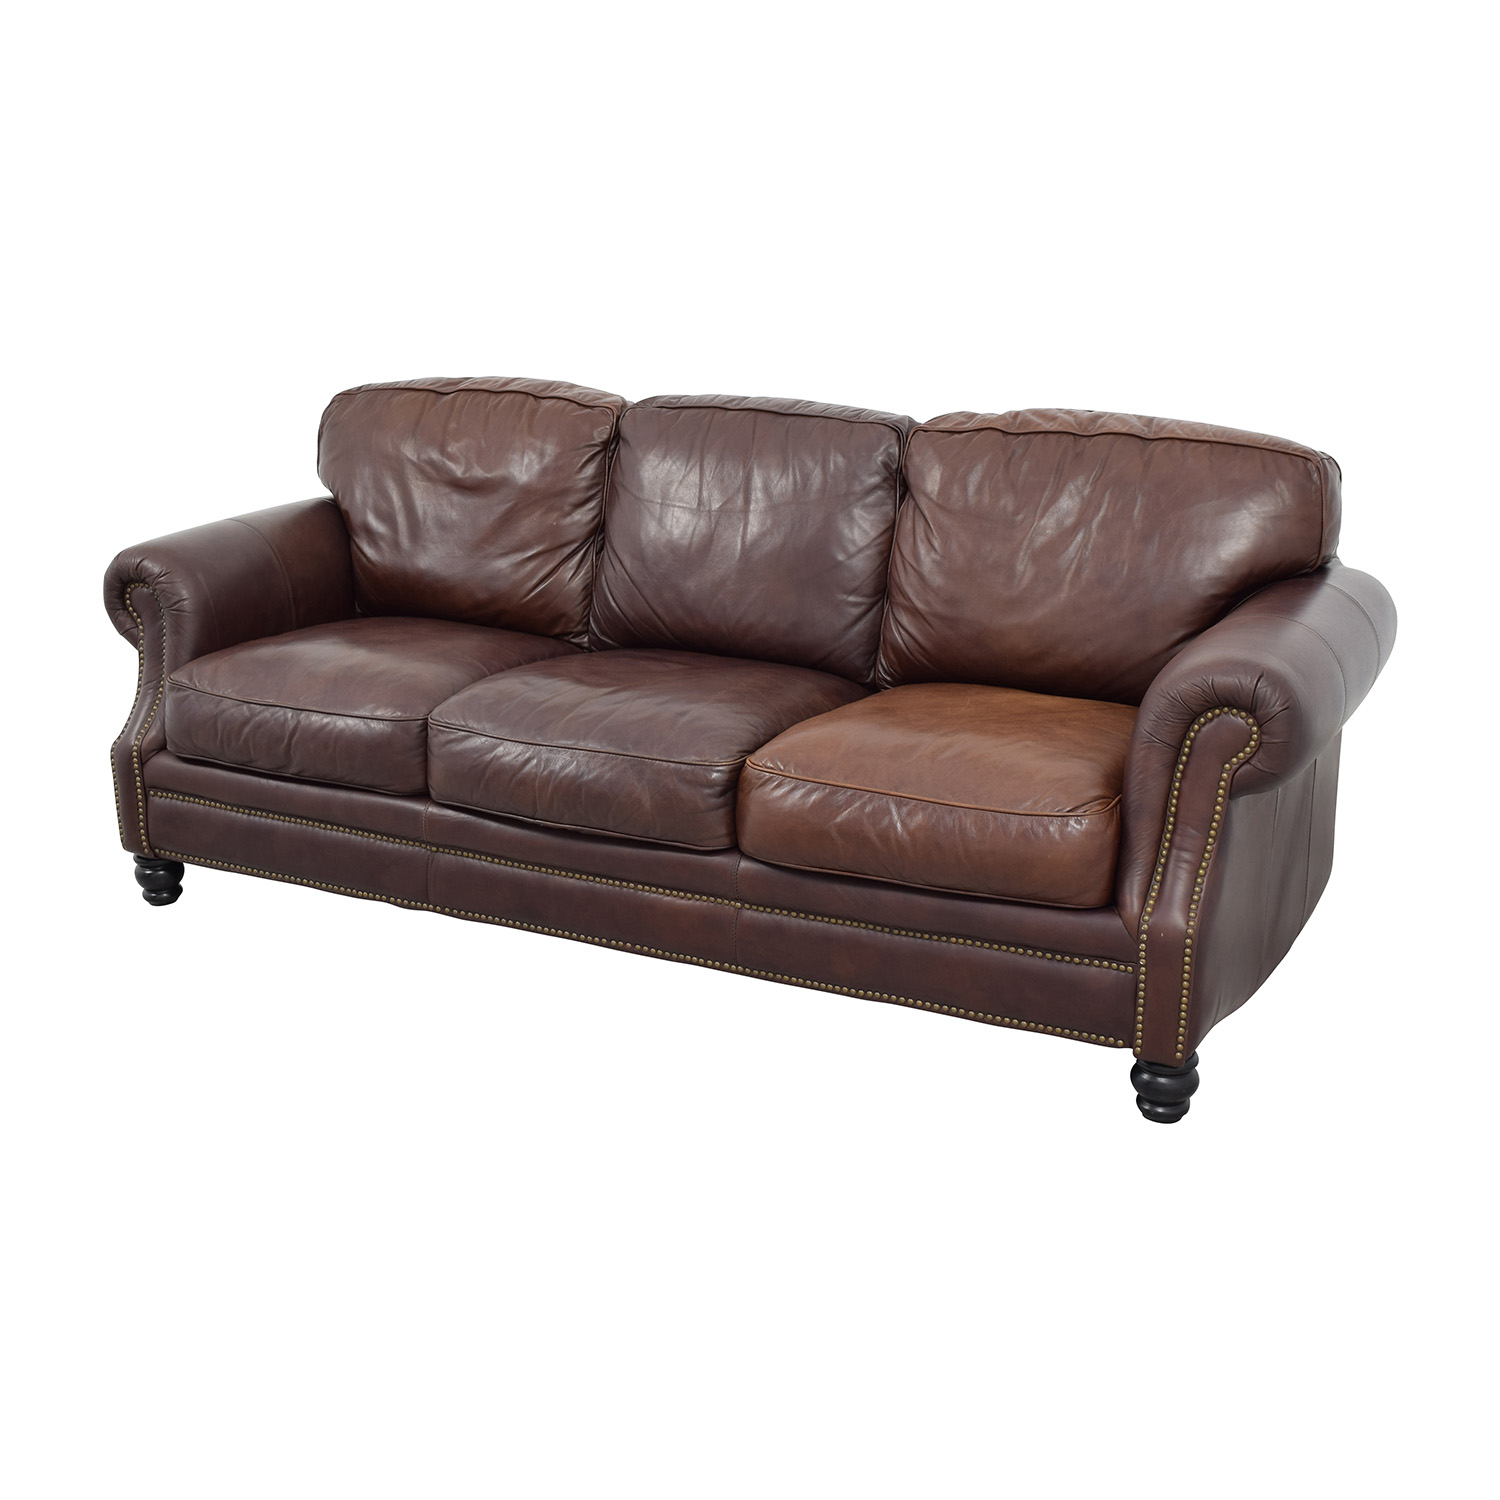 Leather Studded Sofa Furniture Google